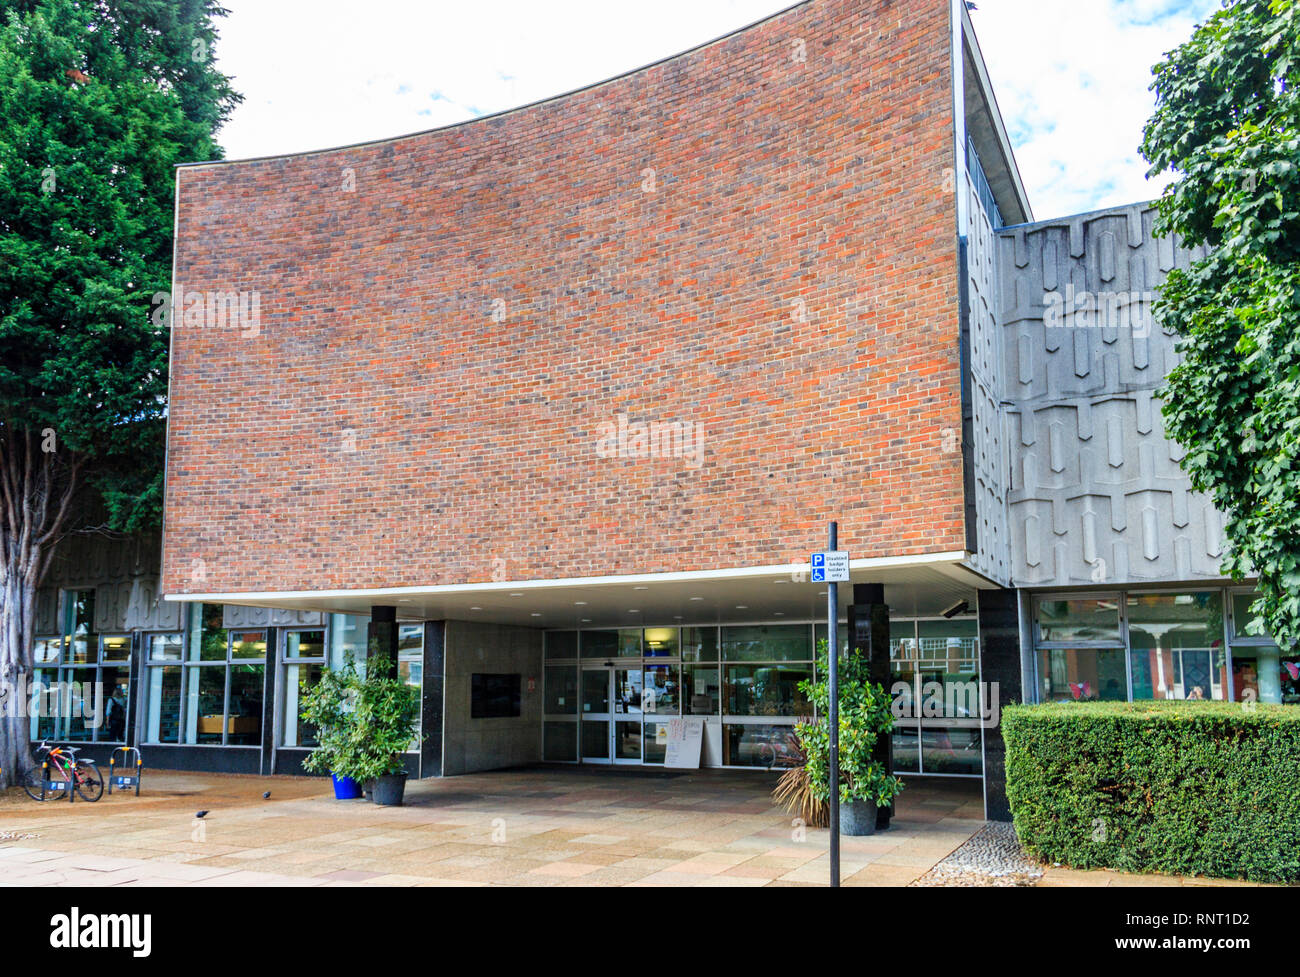 The entrance of Hornsey Library in Crouch End, North London, UK - Stock Image